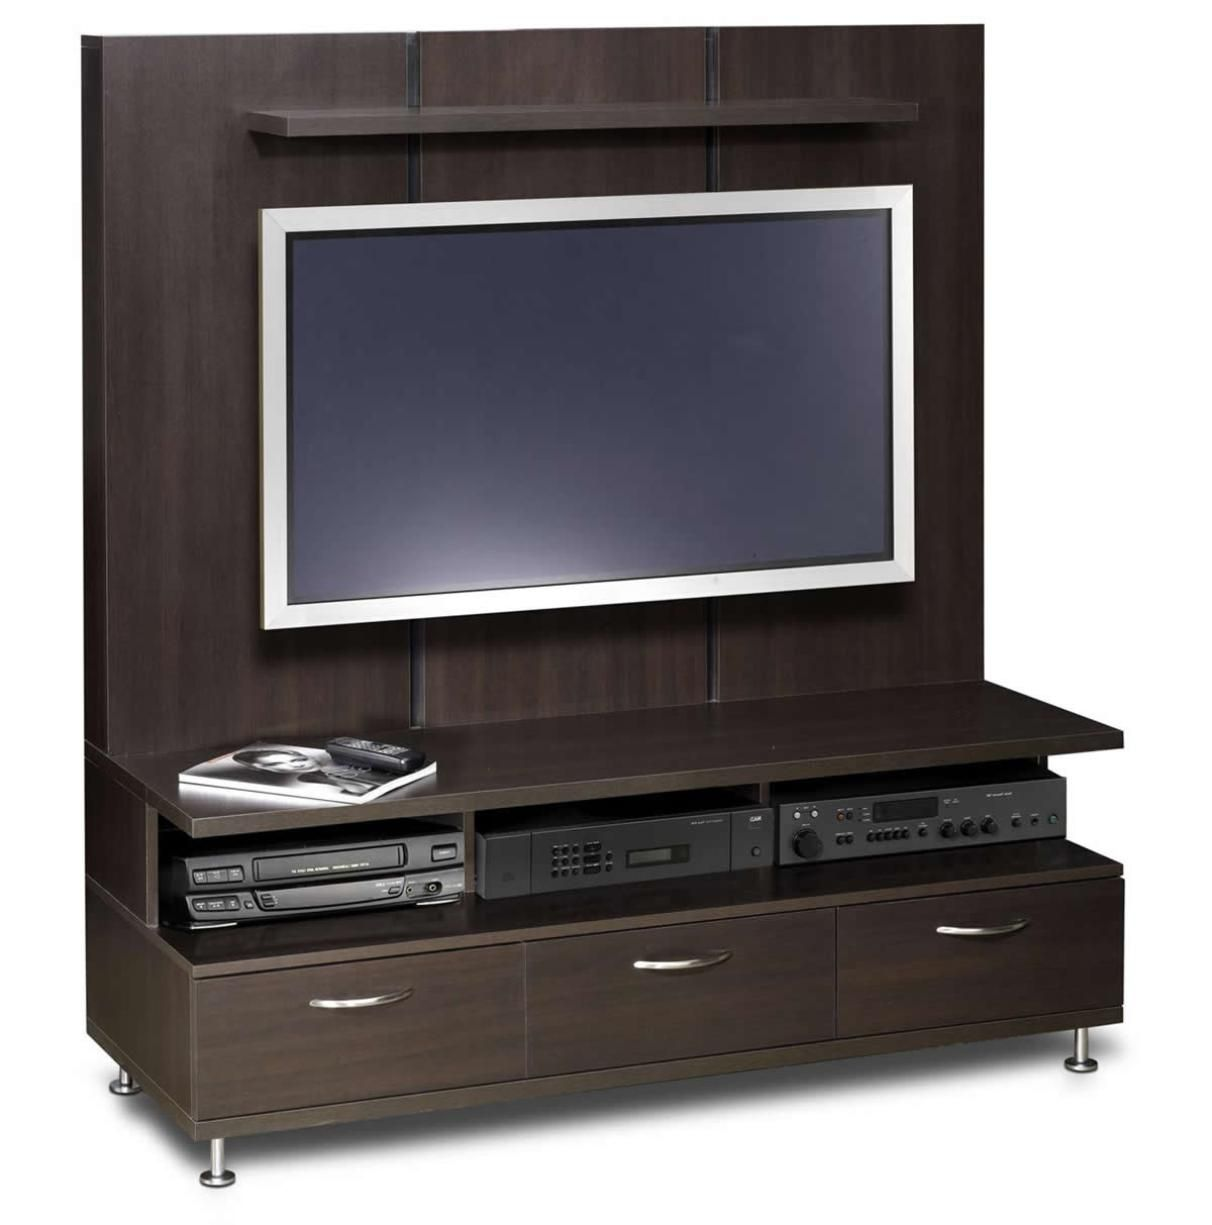 Woodworking plans plasma tv stand plans free download for Tv media storage cabinet